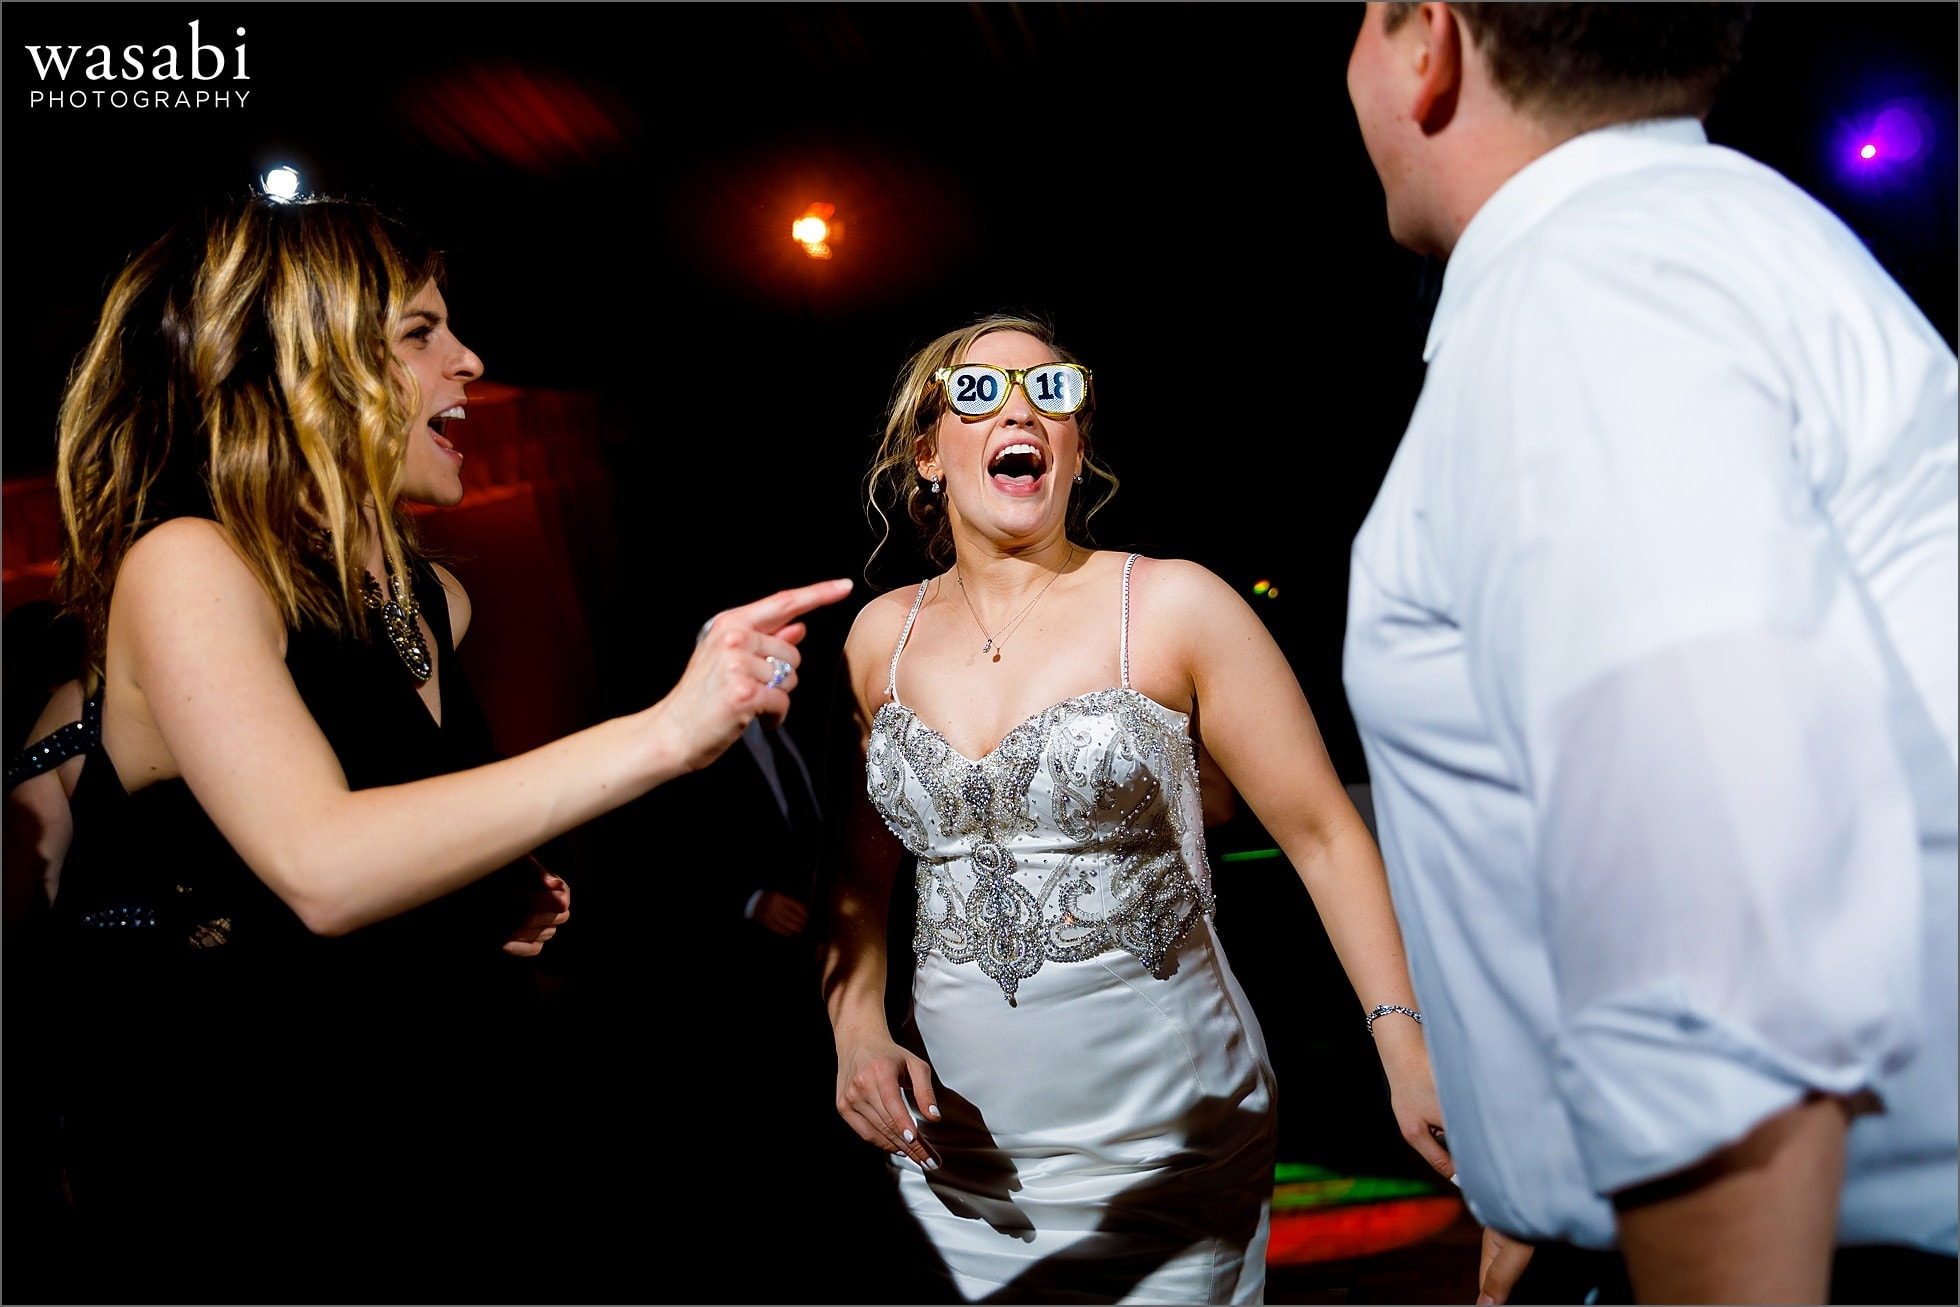 bride dances with 2018 glasses during New Years Eve wedding reception at Chicago Marriott Lincolnshire Resort